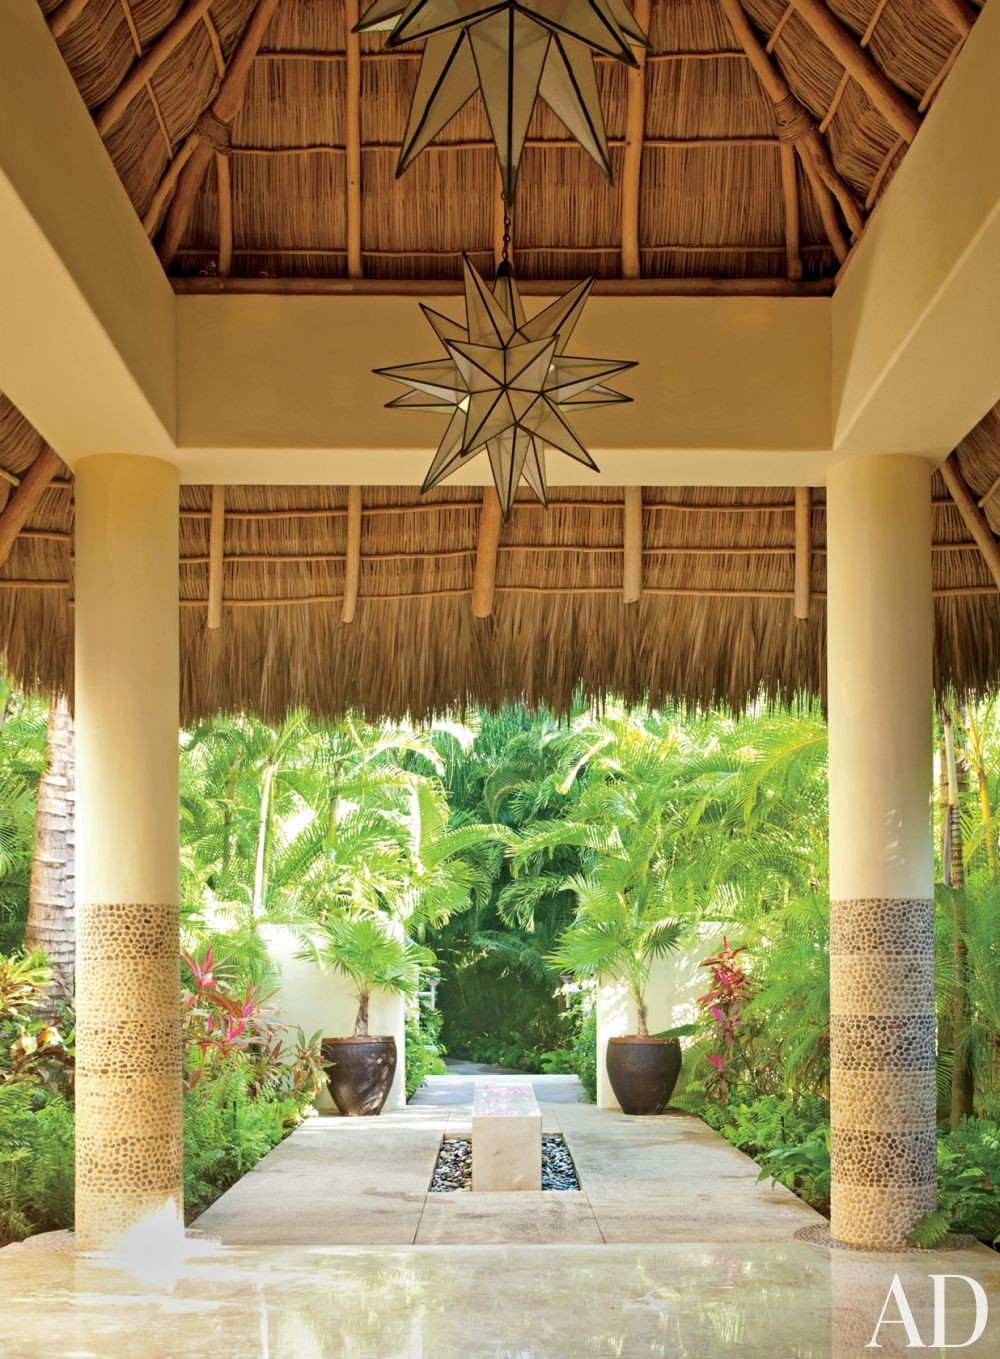 Exotic Entrance Hall by Martyn Lawrence Bullard in Punta Mita, Mexico